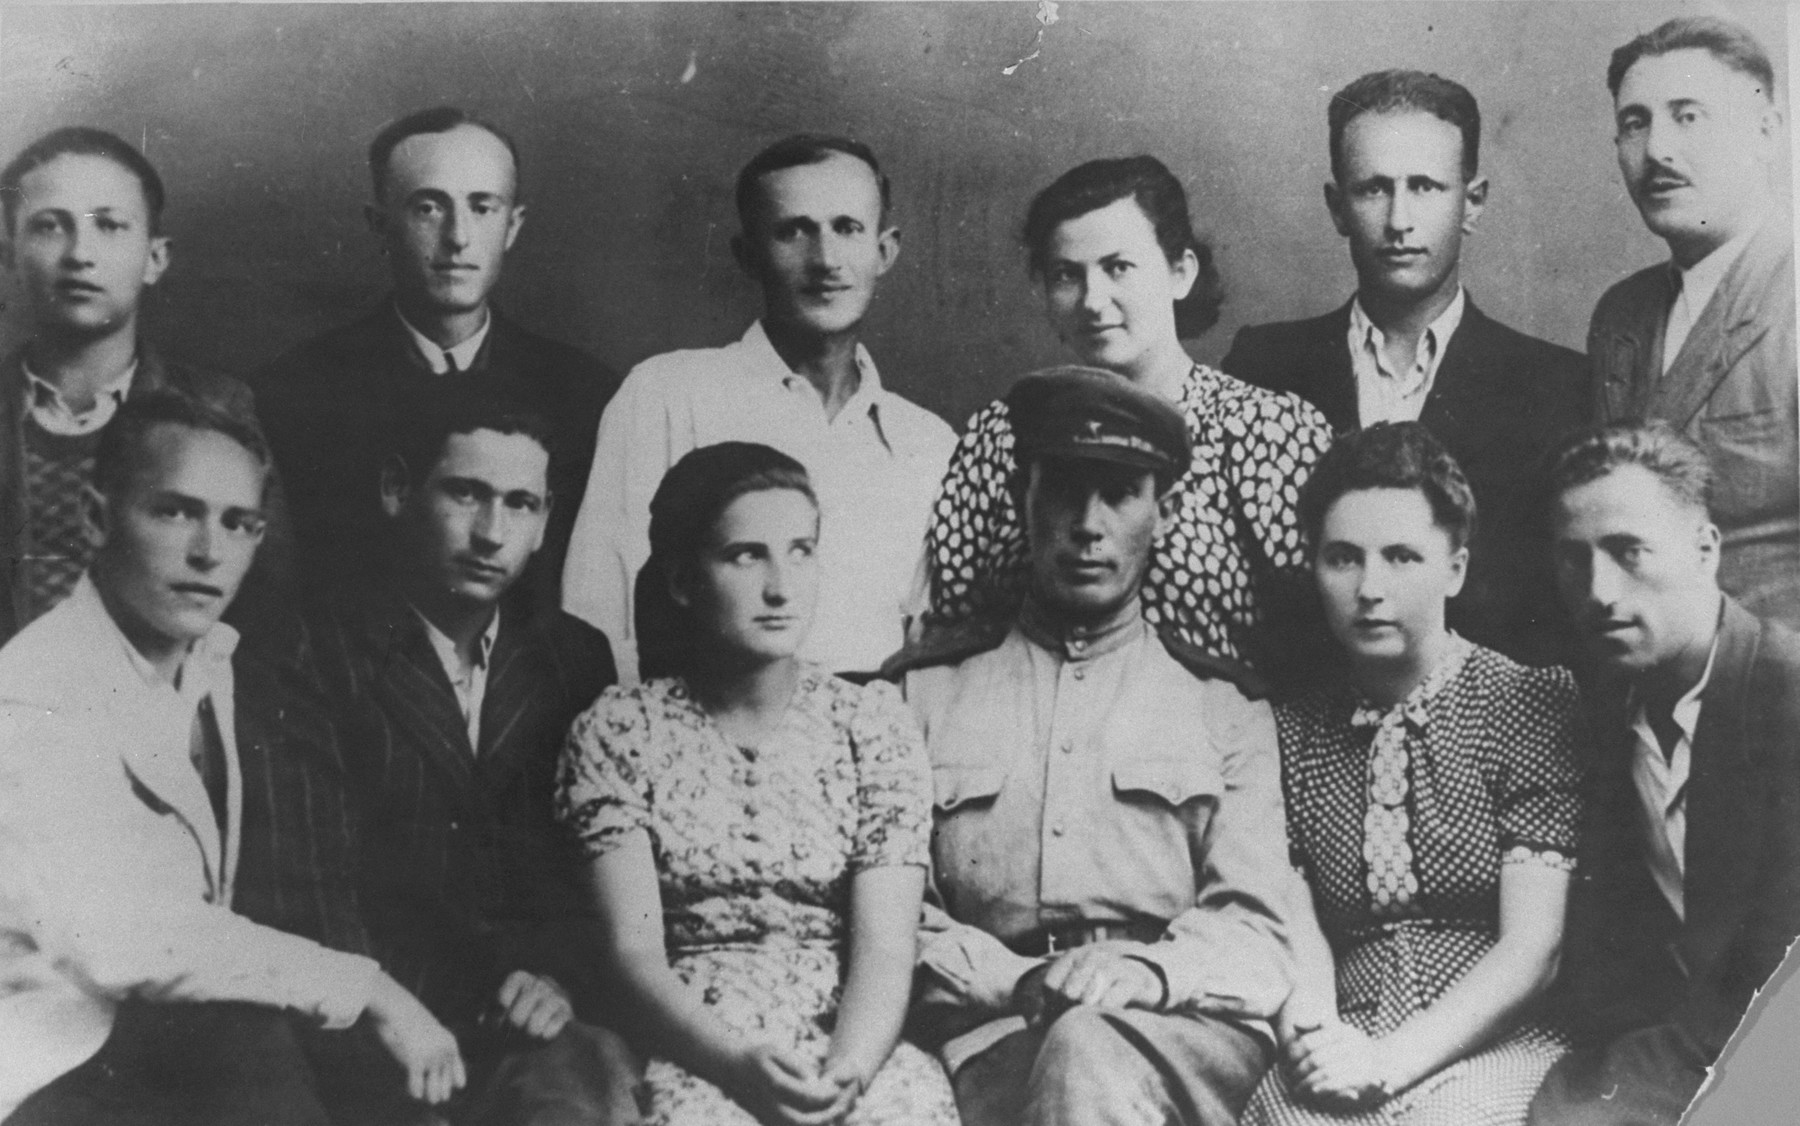 Group portrait of participants in the uprising in the Sobibor death camp.   Among those pictured in the front row are Yosef Ertman (second from the left), Zelda Kelberman (third from left), Esther Raab (second from the right),  The person on the far right has been identified both as Chaim Povroznik and Yehuda Lerner.  [The In the back row are Meyer Zis (far left), Israel Trager (third from the left), and Leib Felhendler (far right).   In the summer of 1943 Jewish prisoners in Sobibor organised an underground group under the leadership of Leon Feldhendler, the former chairman of the Jewish Council in Zolkiew, in the hopes of staging an uprising and mass escape from the camp.  When a group of Soviet Jewish POWs arrived at the camp in mid-September, one of their number, Lt. Aleksandr Pechersky was recruited by the underground and put in charge of the operation, with Feldhendler as his deputy.  The uprising broke out on October 14, 1943, during which eleven SS guards were killed and three hundred prisoners escaped.  All but approximately fifty were apprehended and killed.